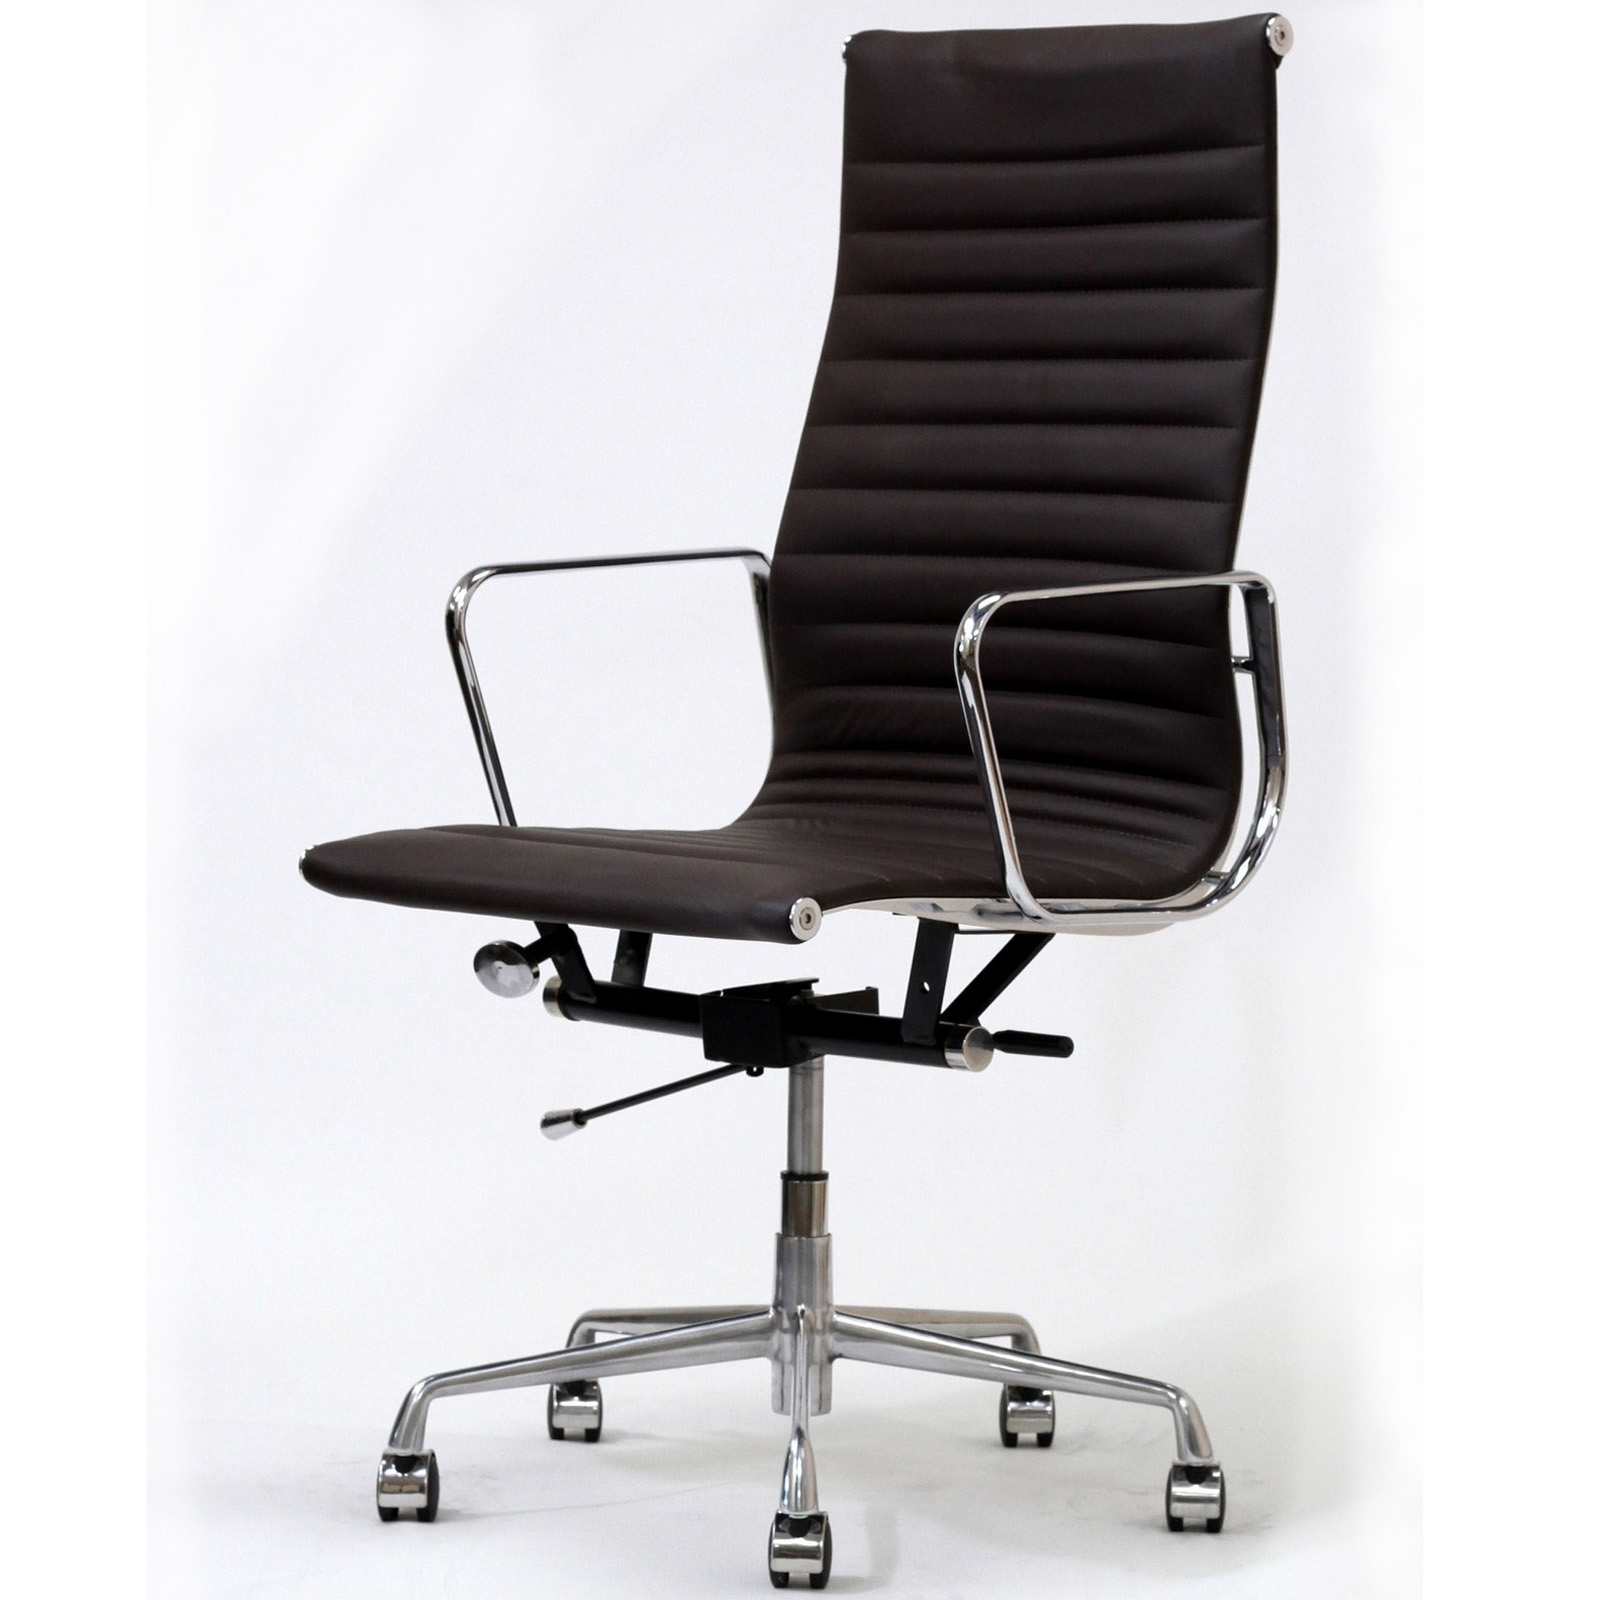 Cool Office Chair Things You Can Do To Improve Your Work Space Brighter Fm